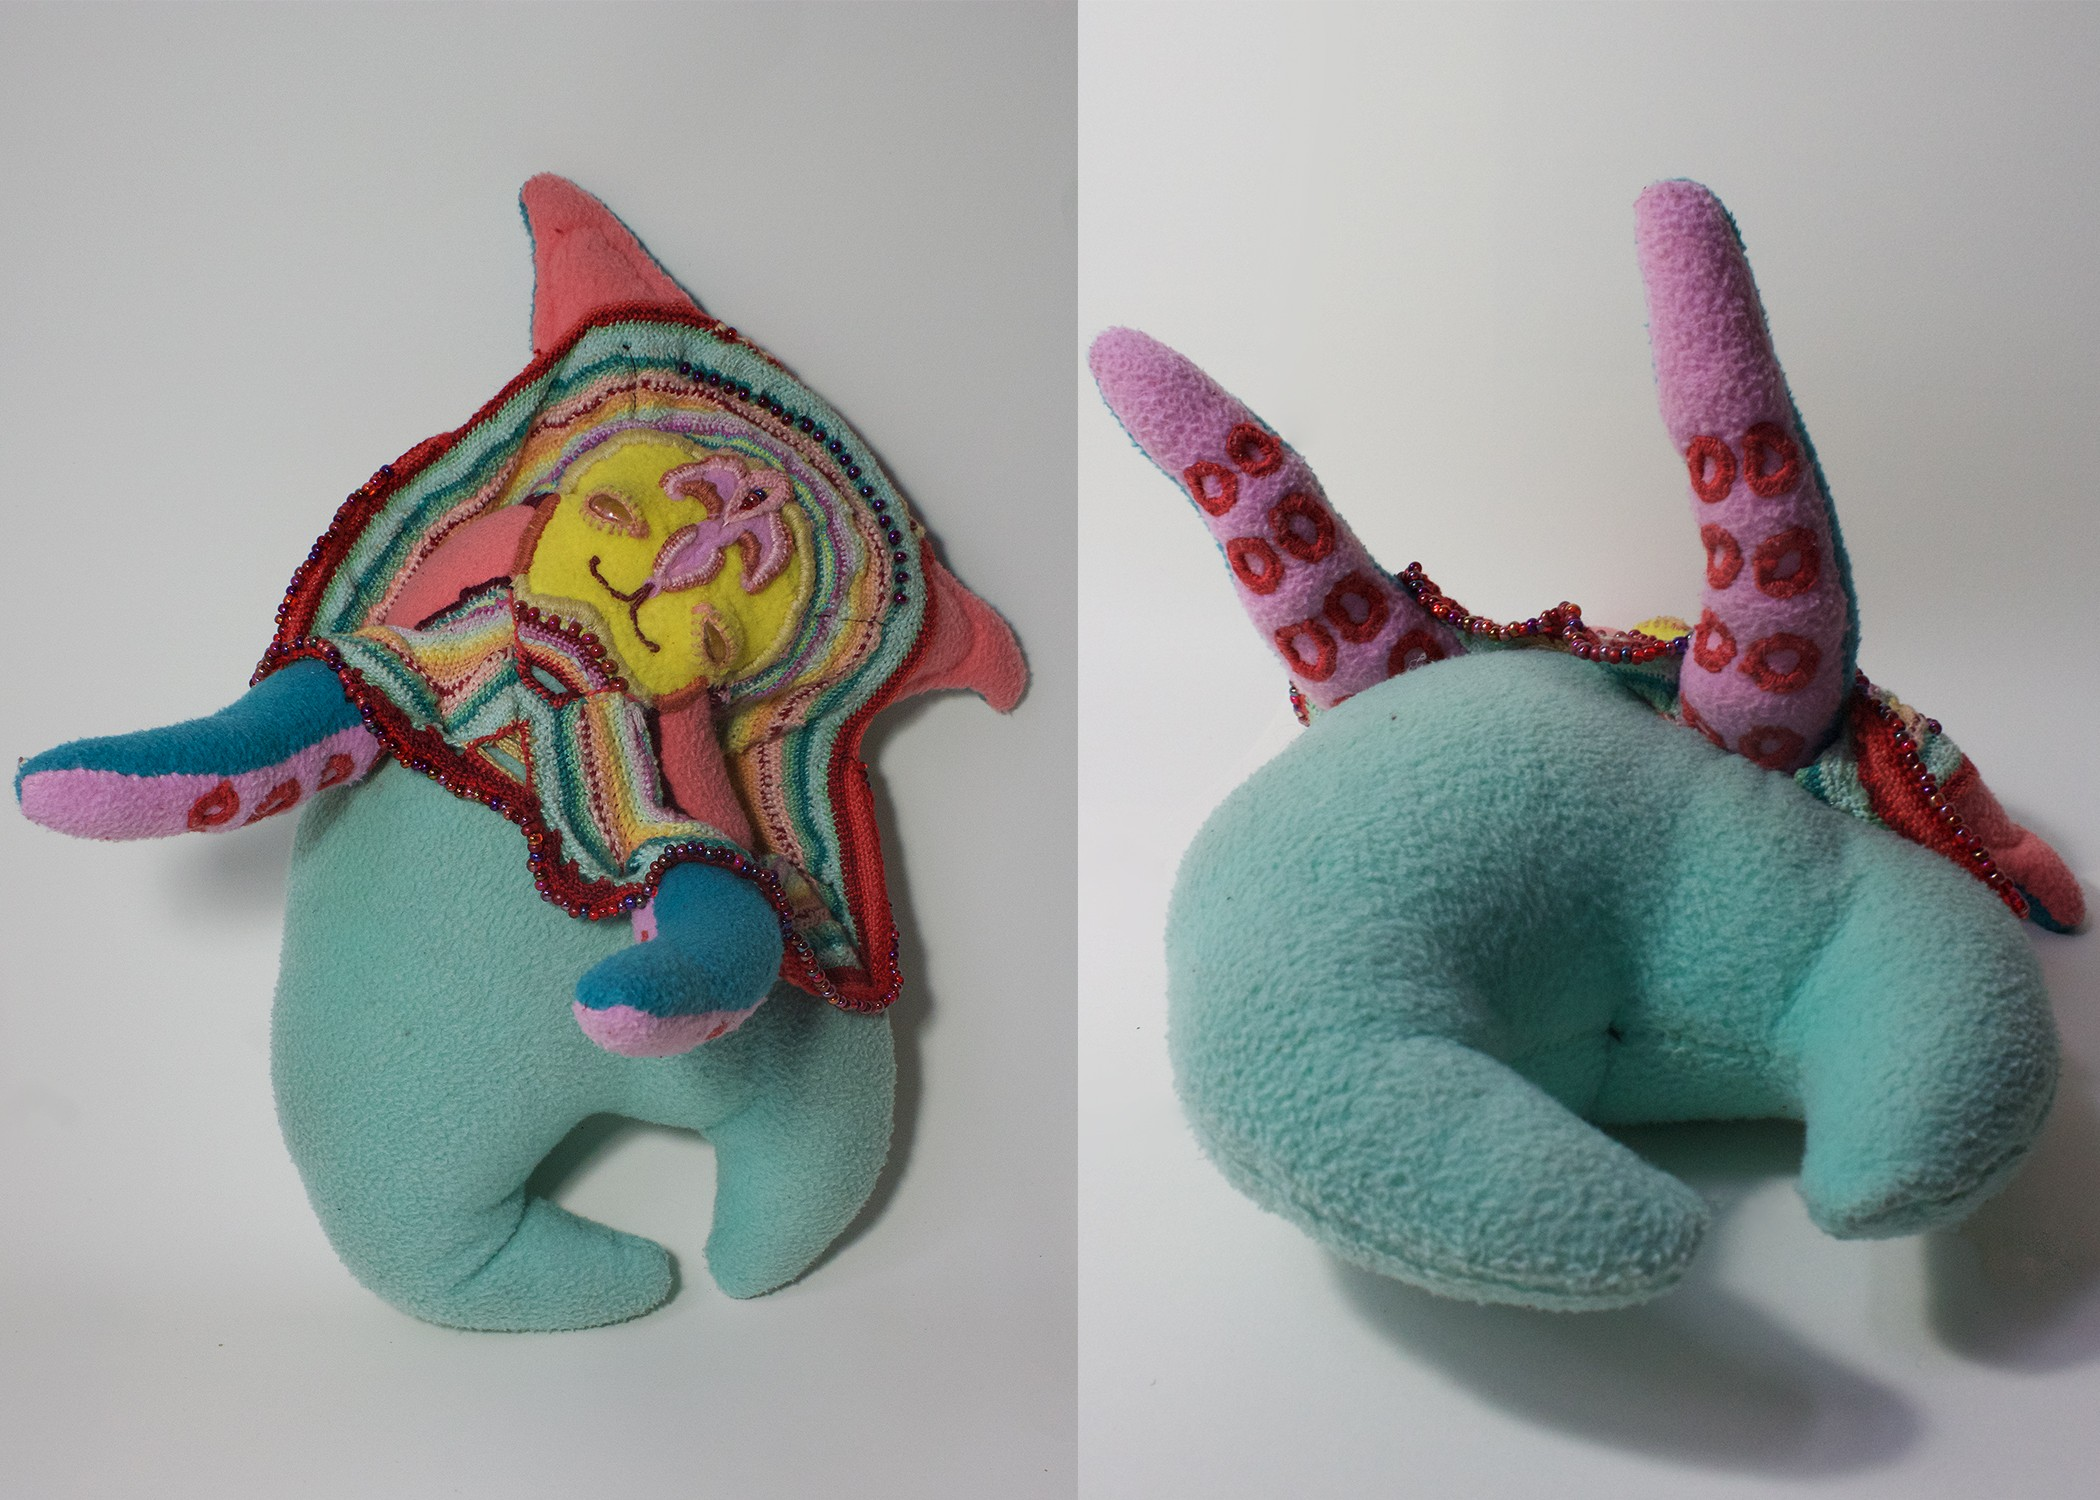 A soft sculpture creature, with a soft and kind smile, greets you with open arms. It has a bat-like face, round body, and two little octopus arms. The creature is mostly a soft teal, with a vibrant multicolored embroidered and beaded frill around its head